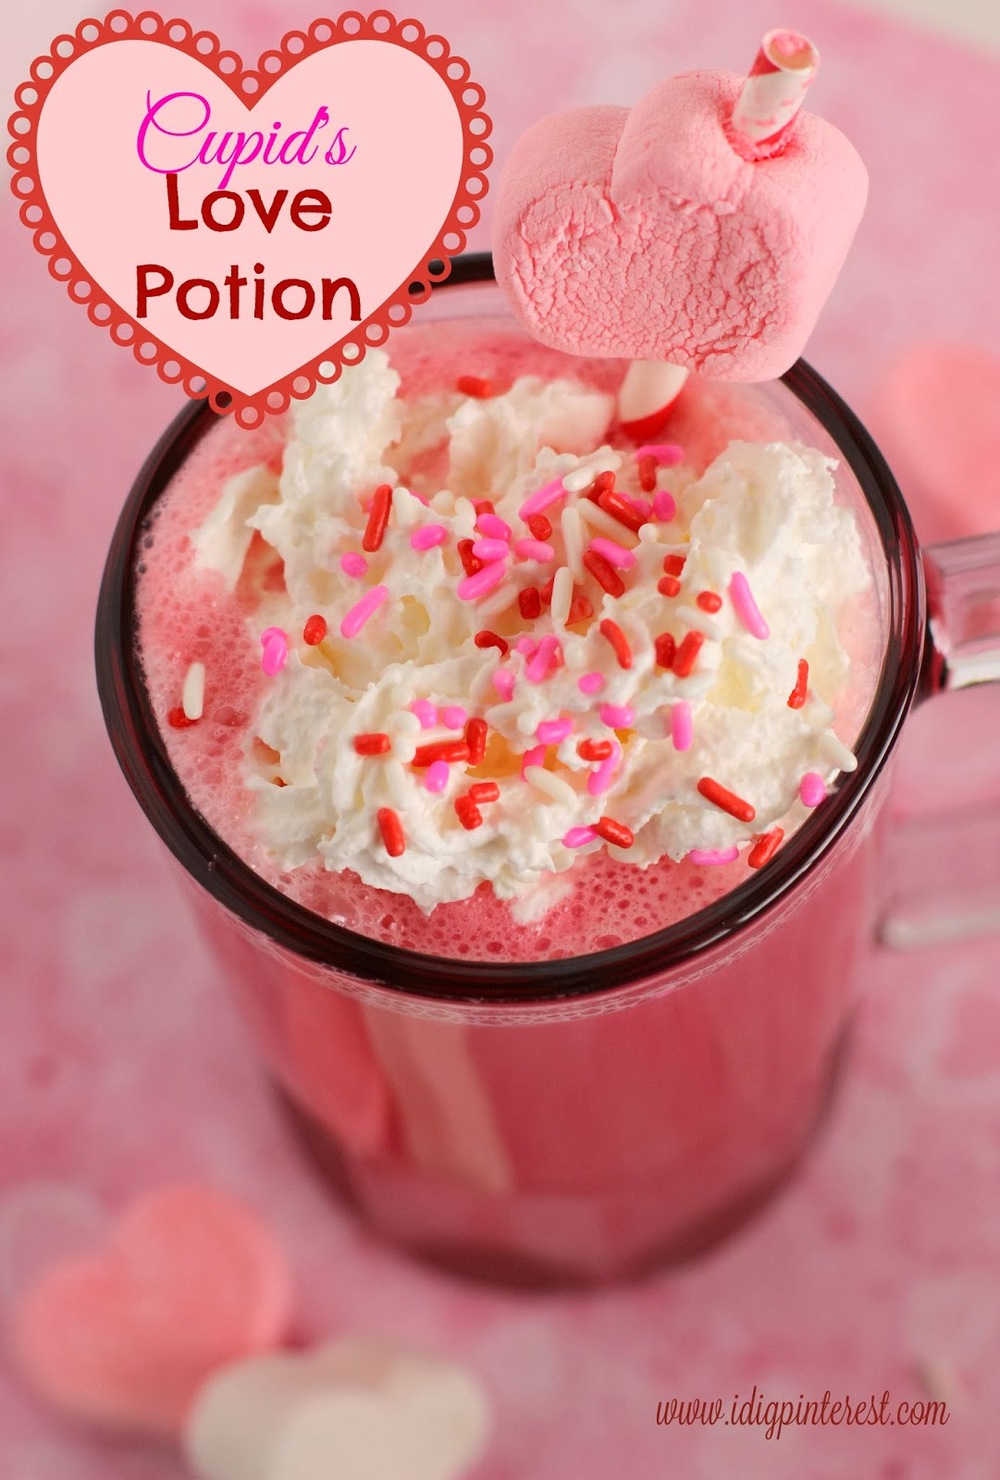 Cupid's Love Potion Valentine's Drink1.jpg